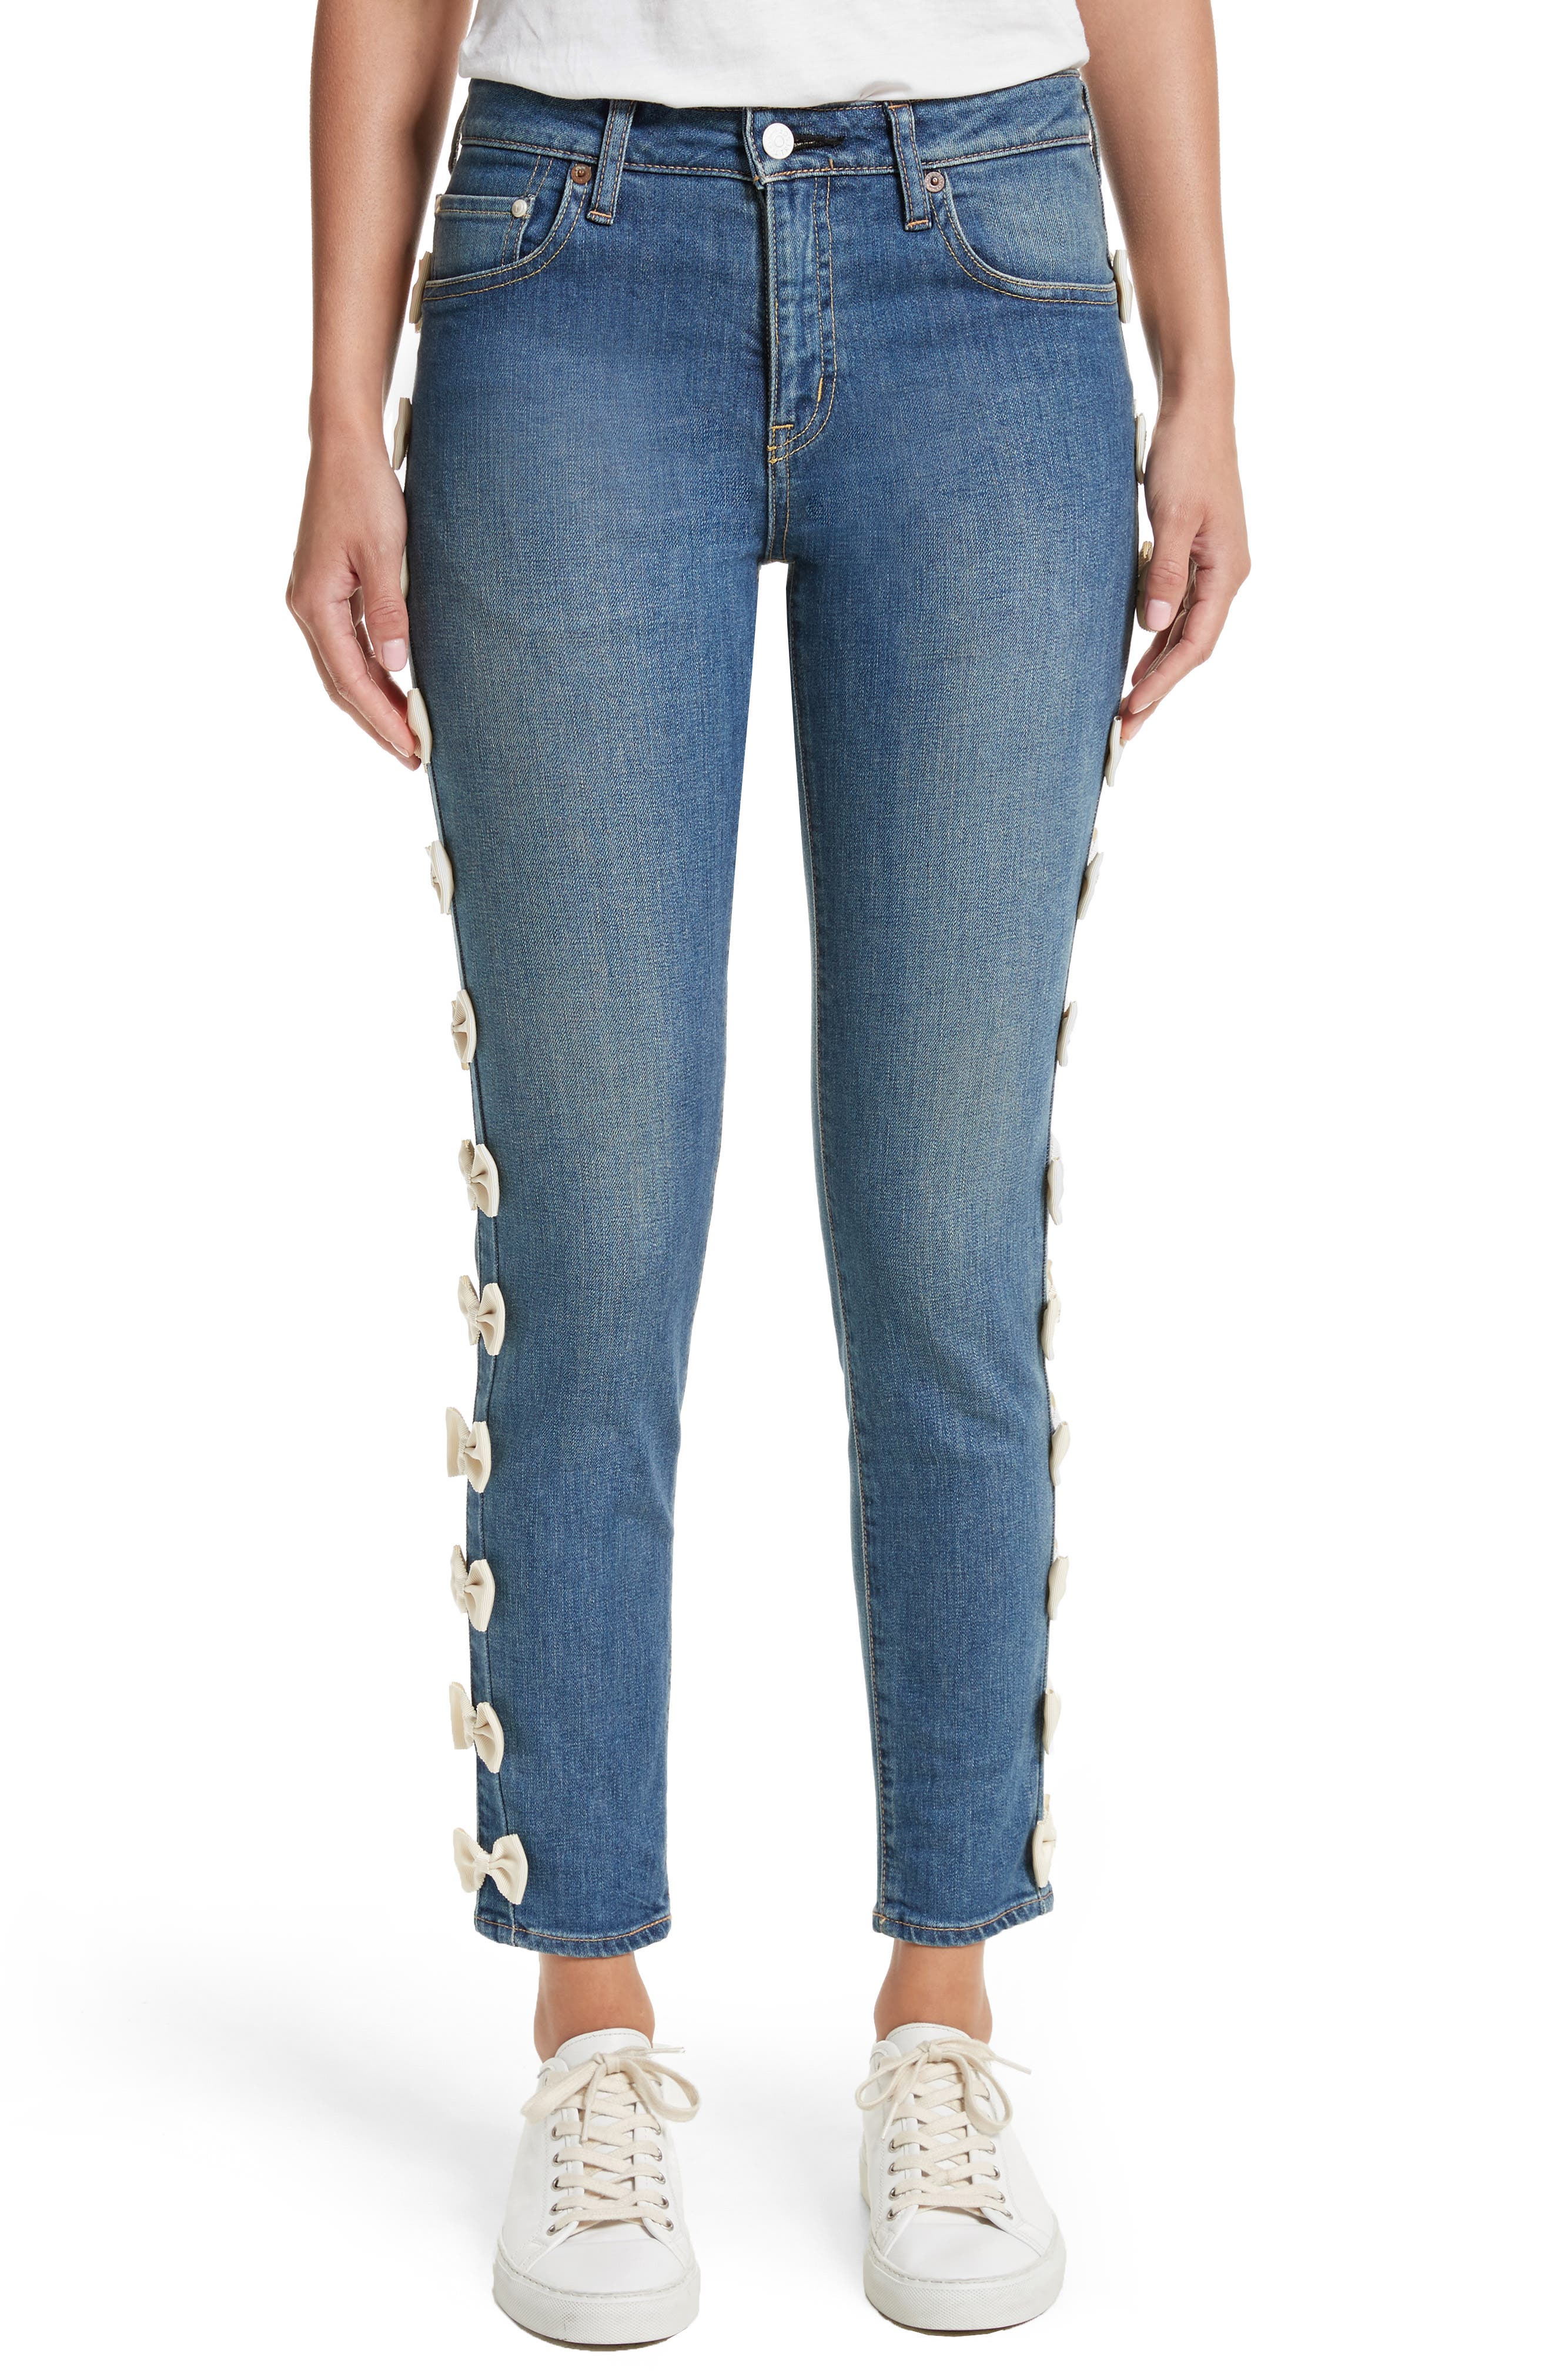 Grosgrain Bow Embellished Jeans,                             Main thumbnail 1, color,                             Blue Ivory